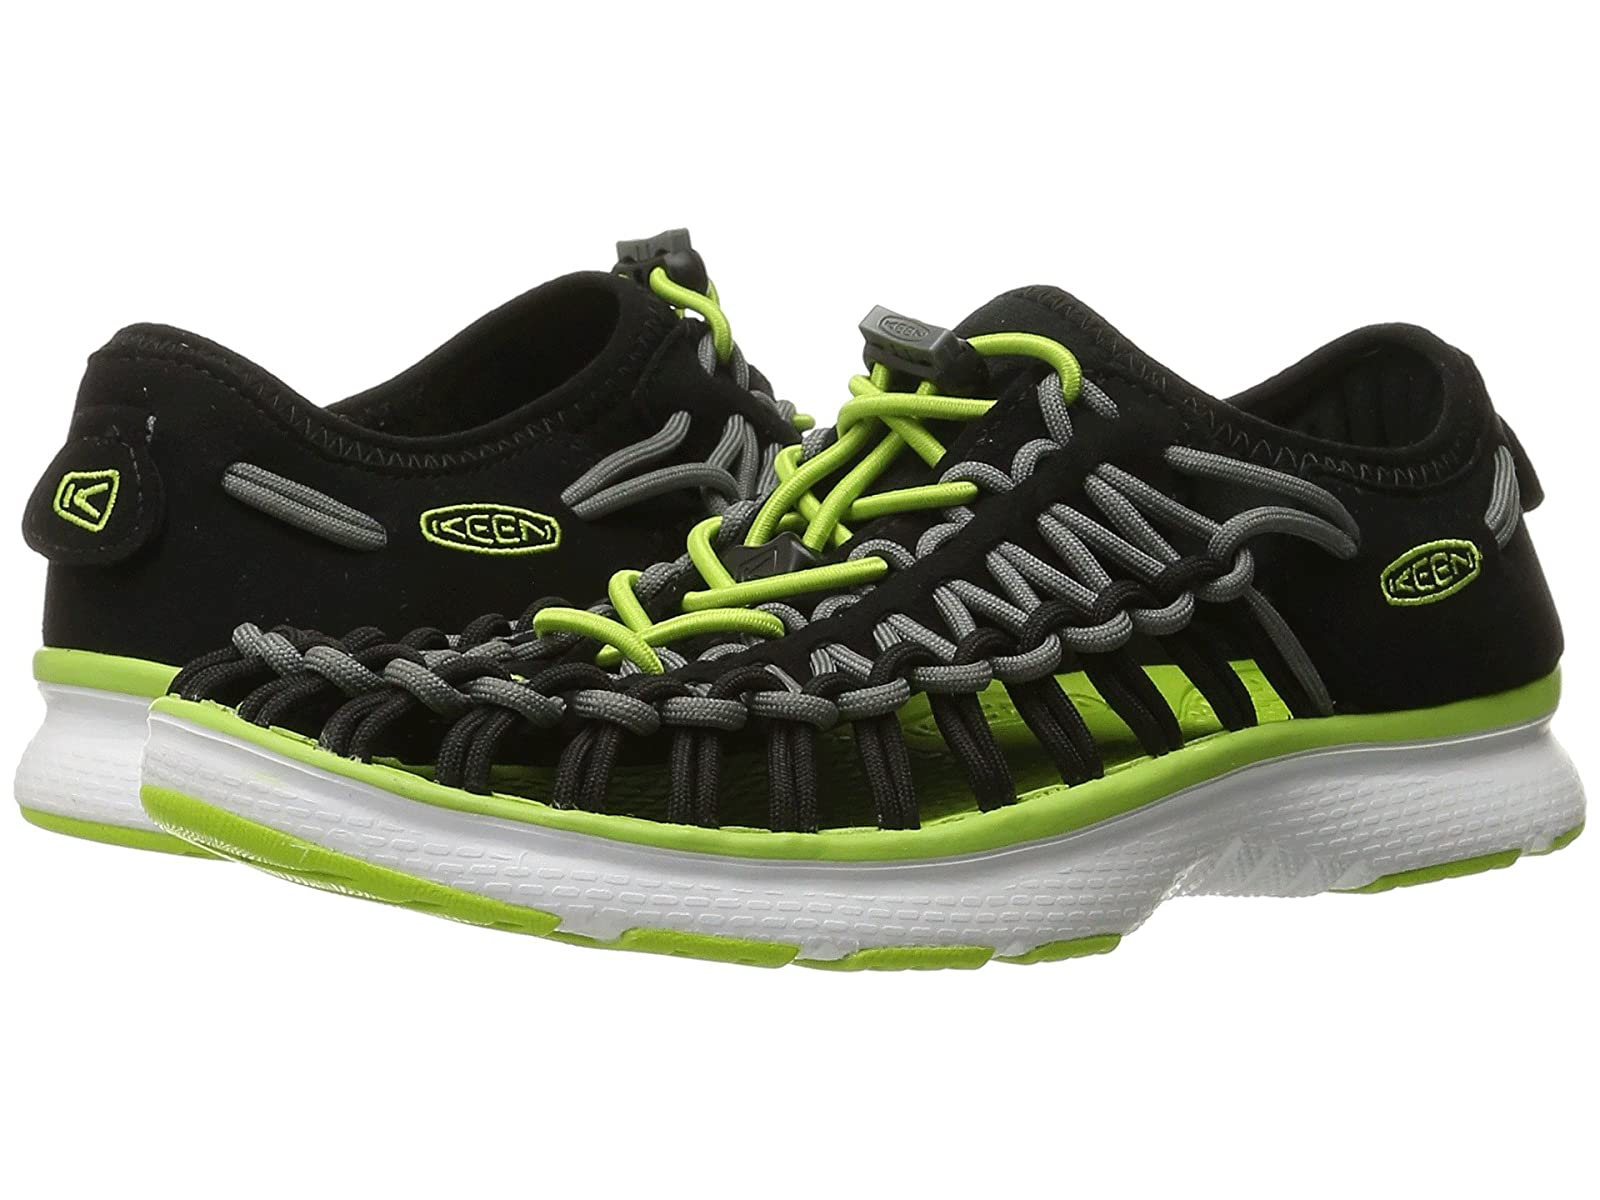 Keen Kids Uneek O2 (Little Kid/Big Kid)Atmospheric grades have affordable shoes